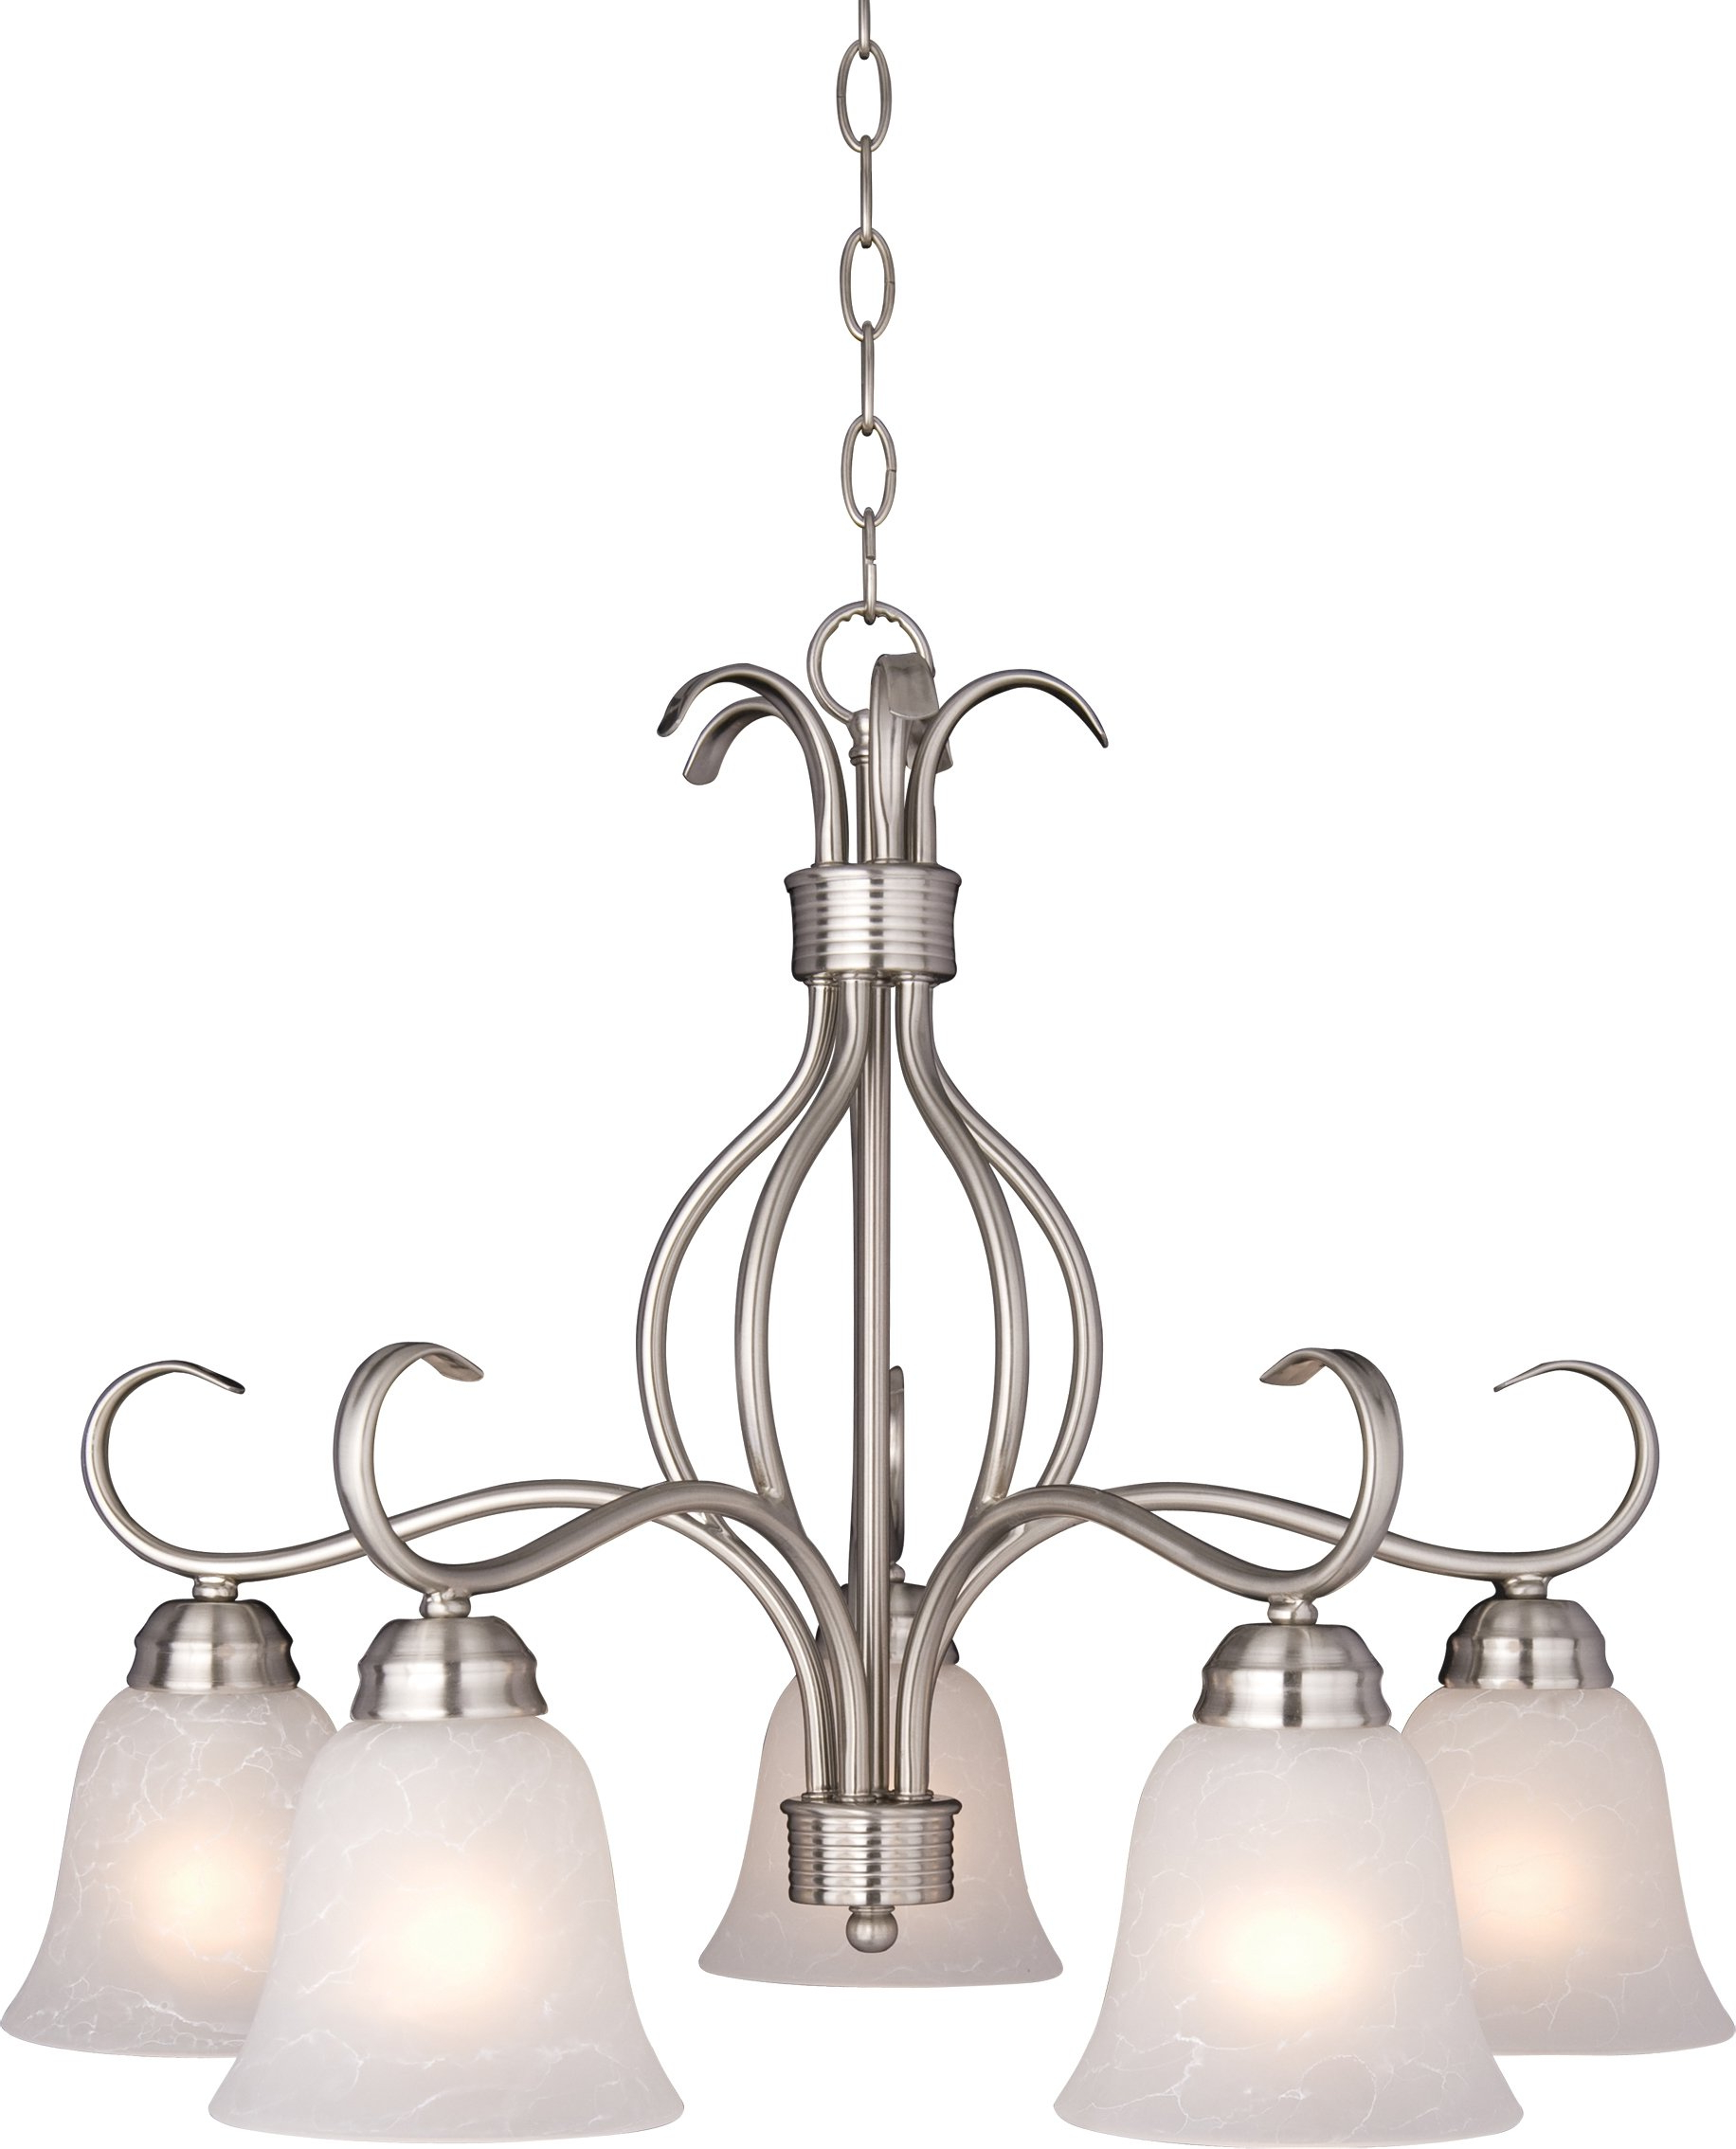 Wehr 5 Light Shaded Chandelier Throughout Favorite Gaines 5 Light Shaded Chandeliers (View 10 of 20)